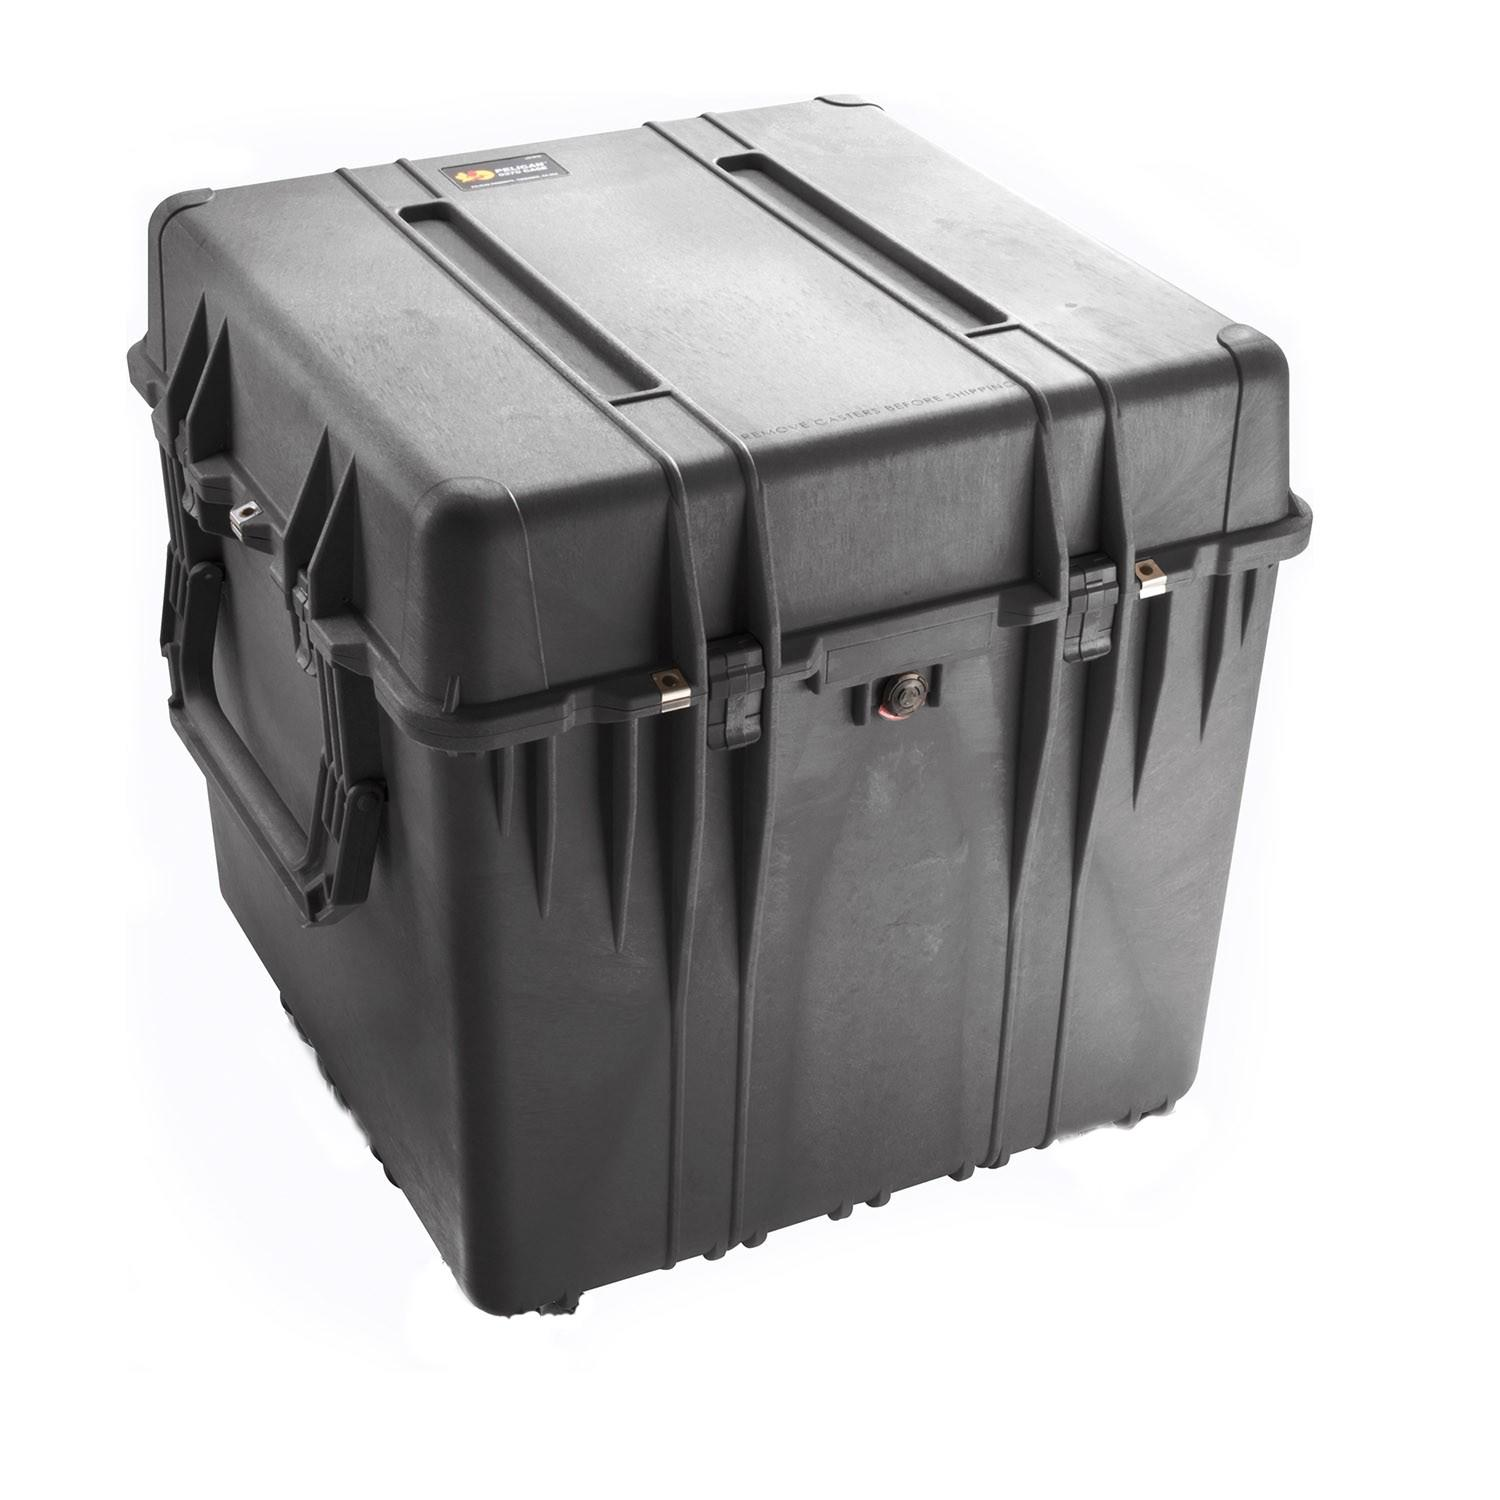 Peli 0370 Cube Case - Empty